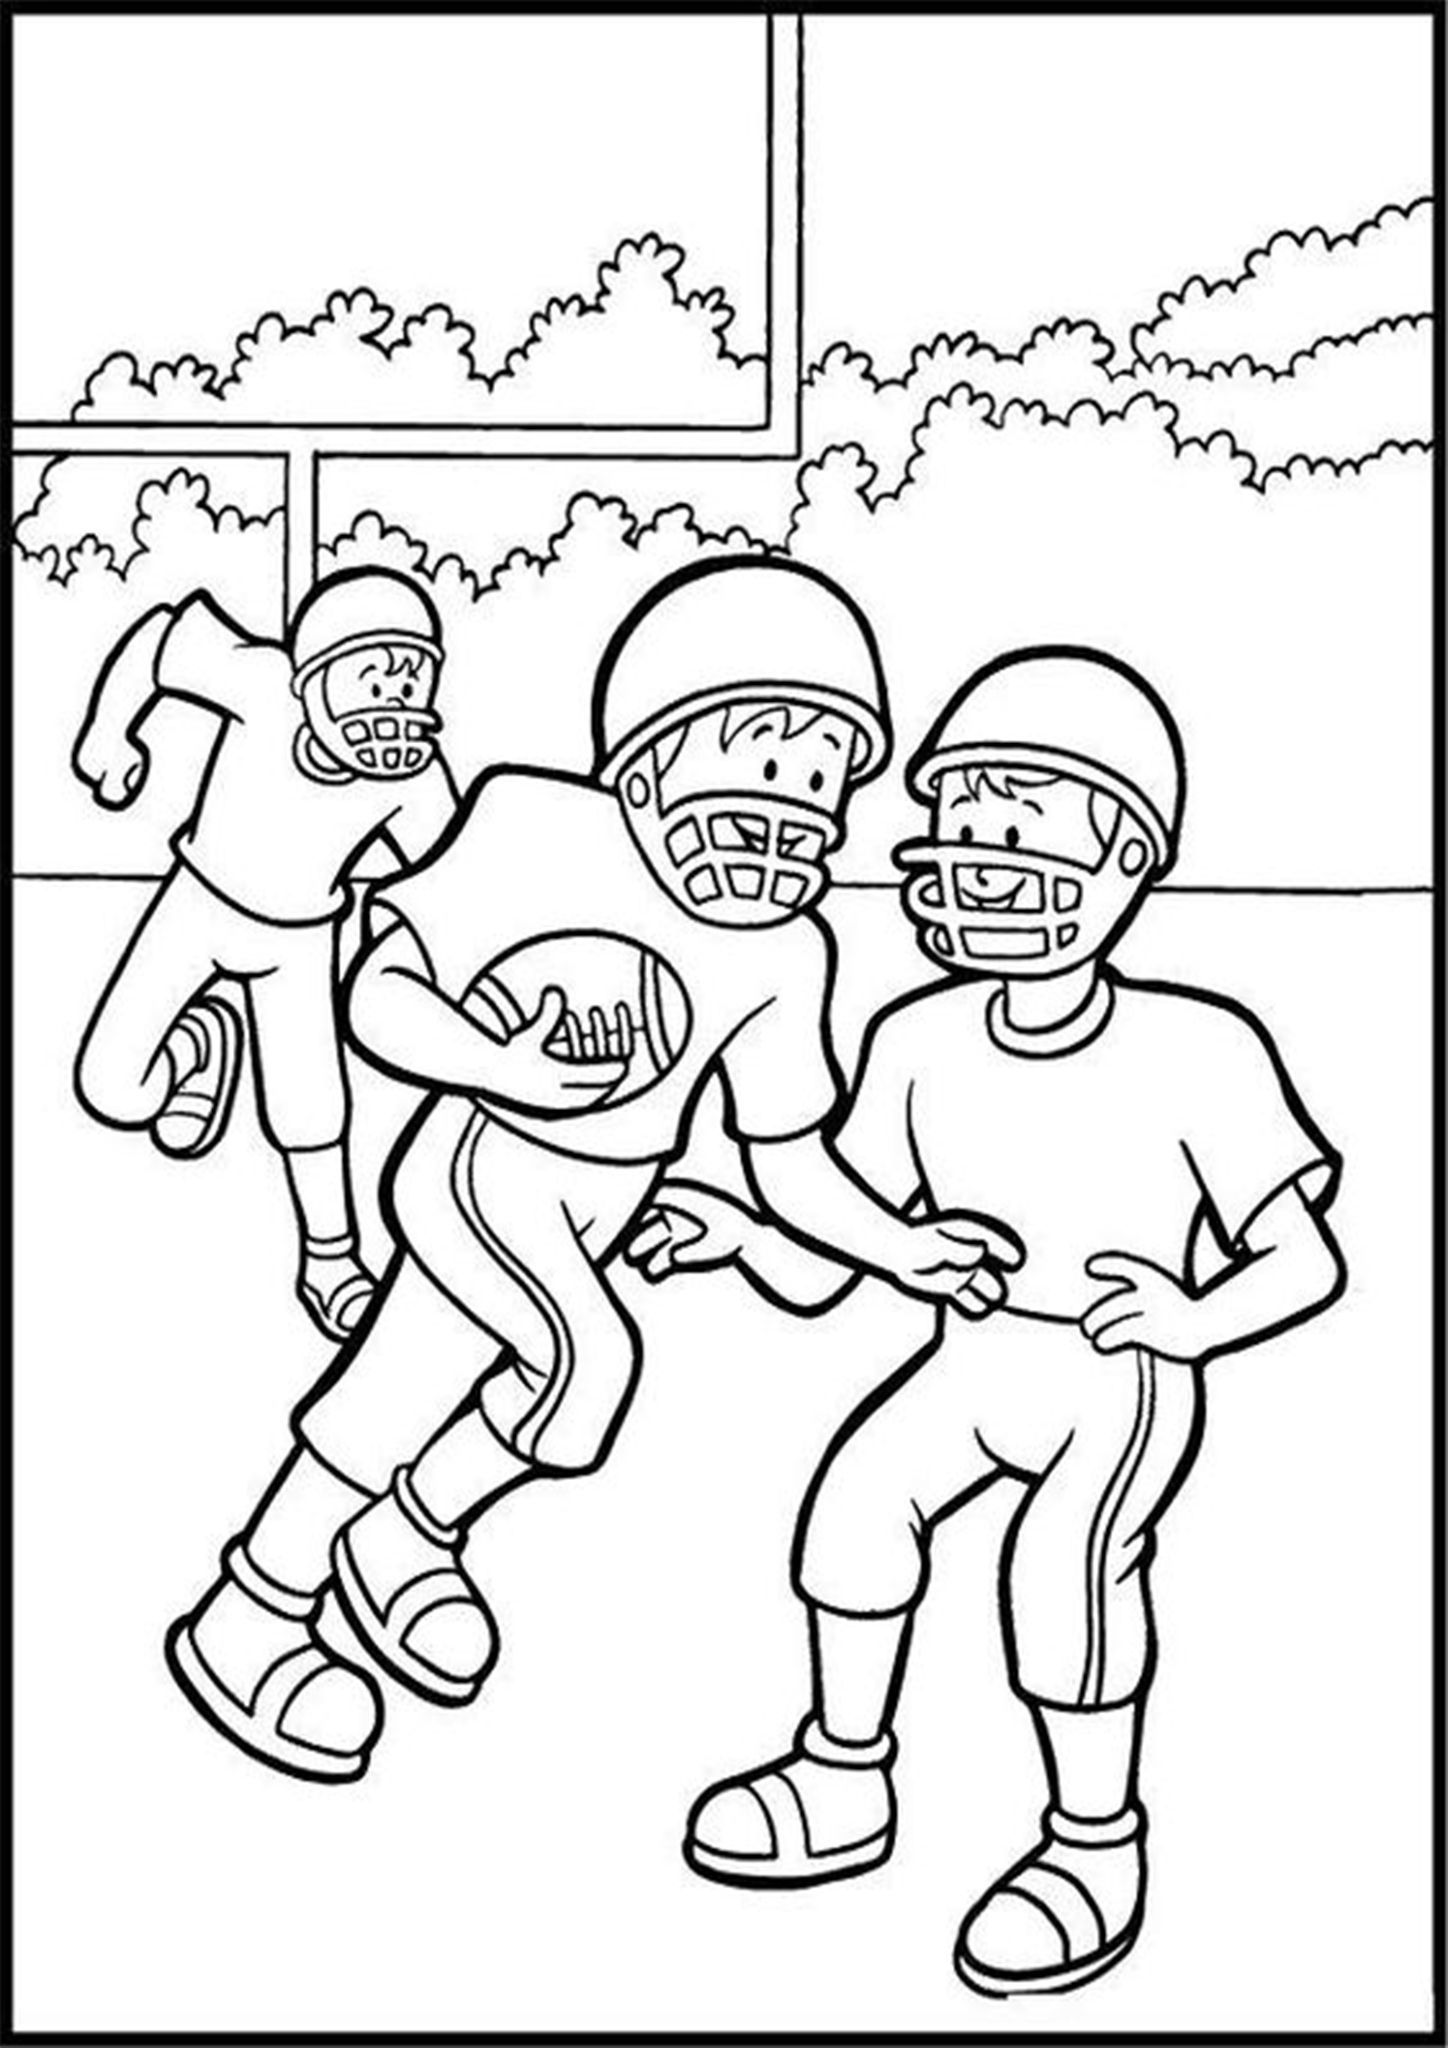 football coloring pages online mats hummels fifa world cup football coloring pages printable coloring football online pages